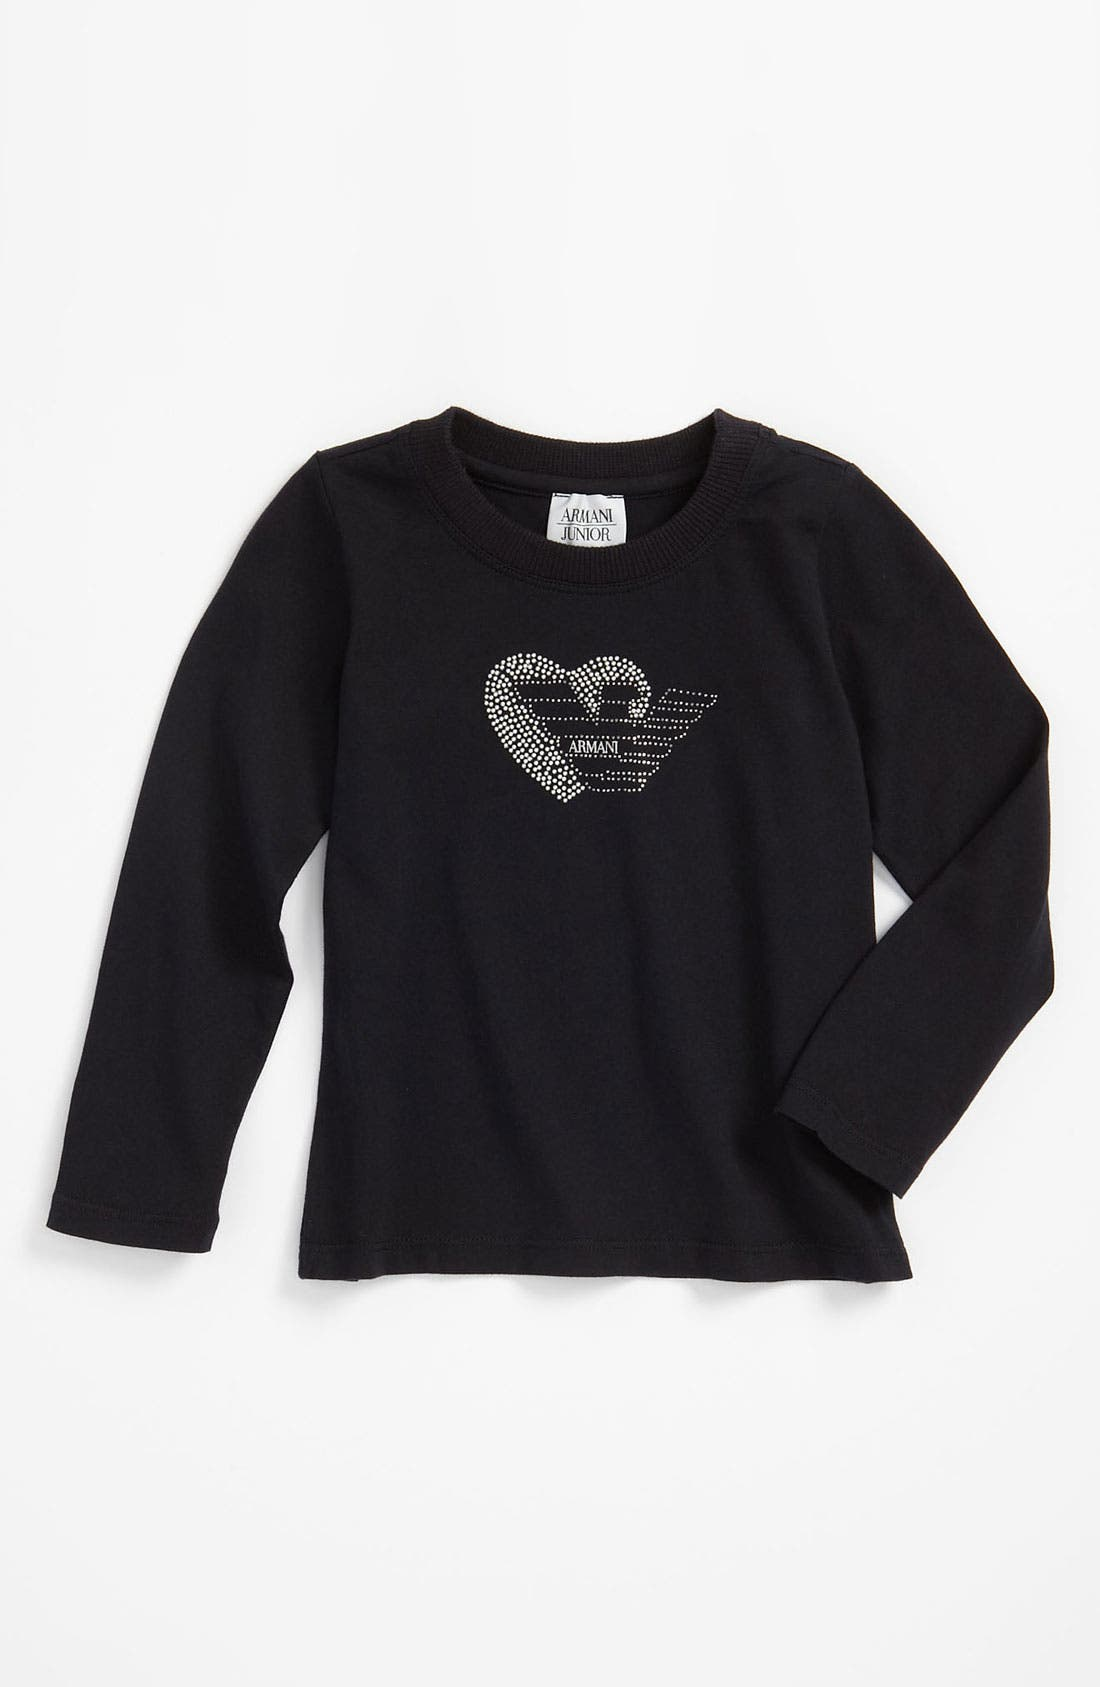 Alternate Image 1 Selected - Armani Junior Studded Heart Logo Tee (Toddler)